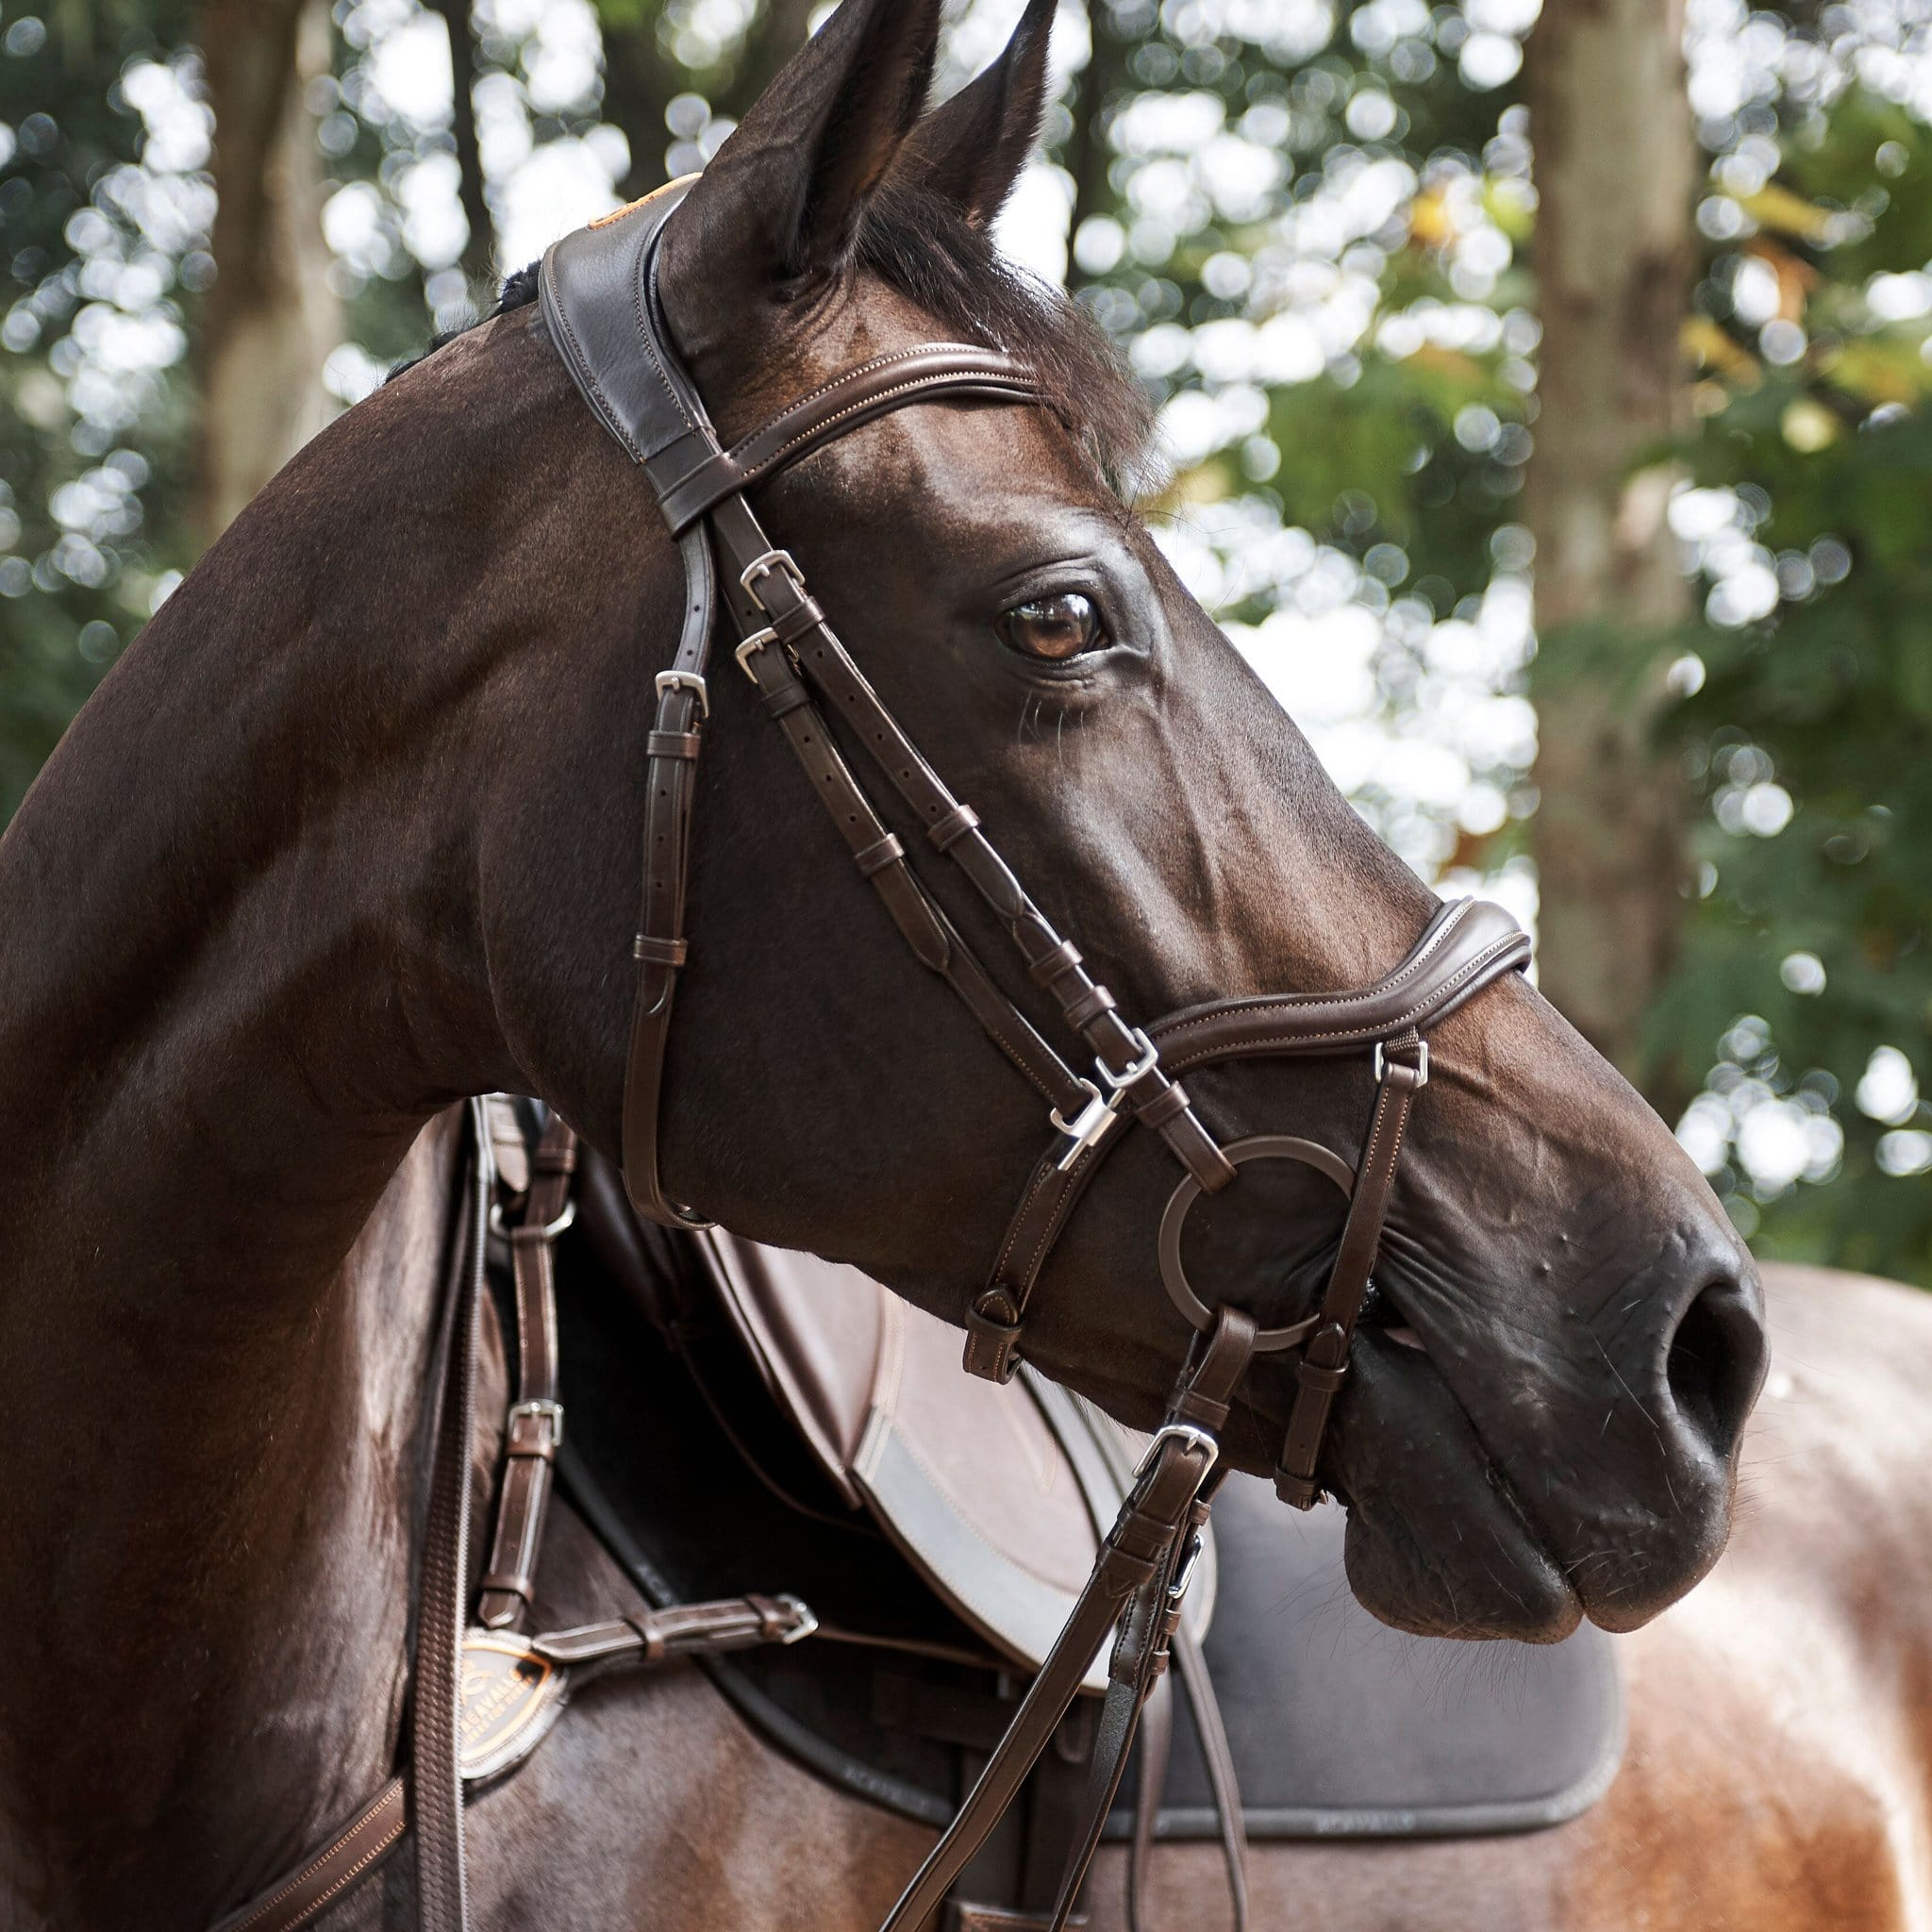 Acavallo Allegoria Bridle 5132 Brown On Bay Horse